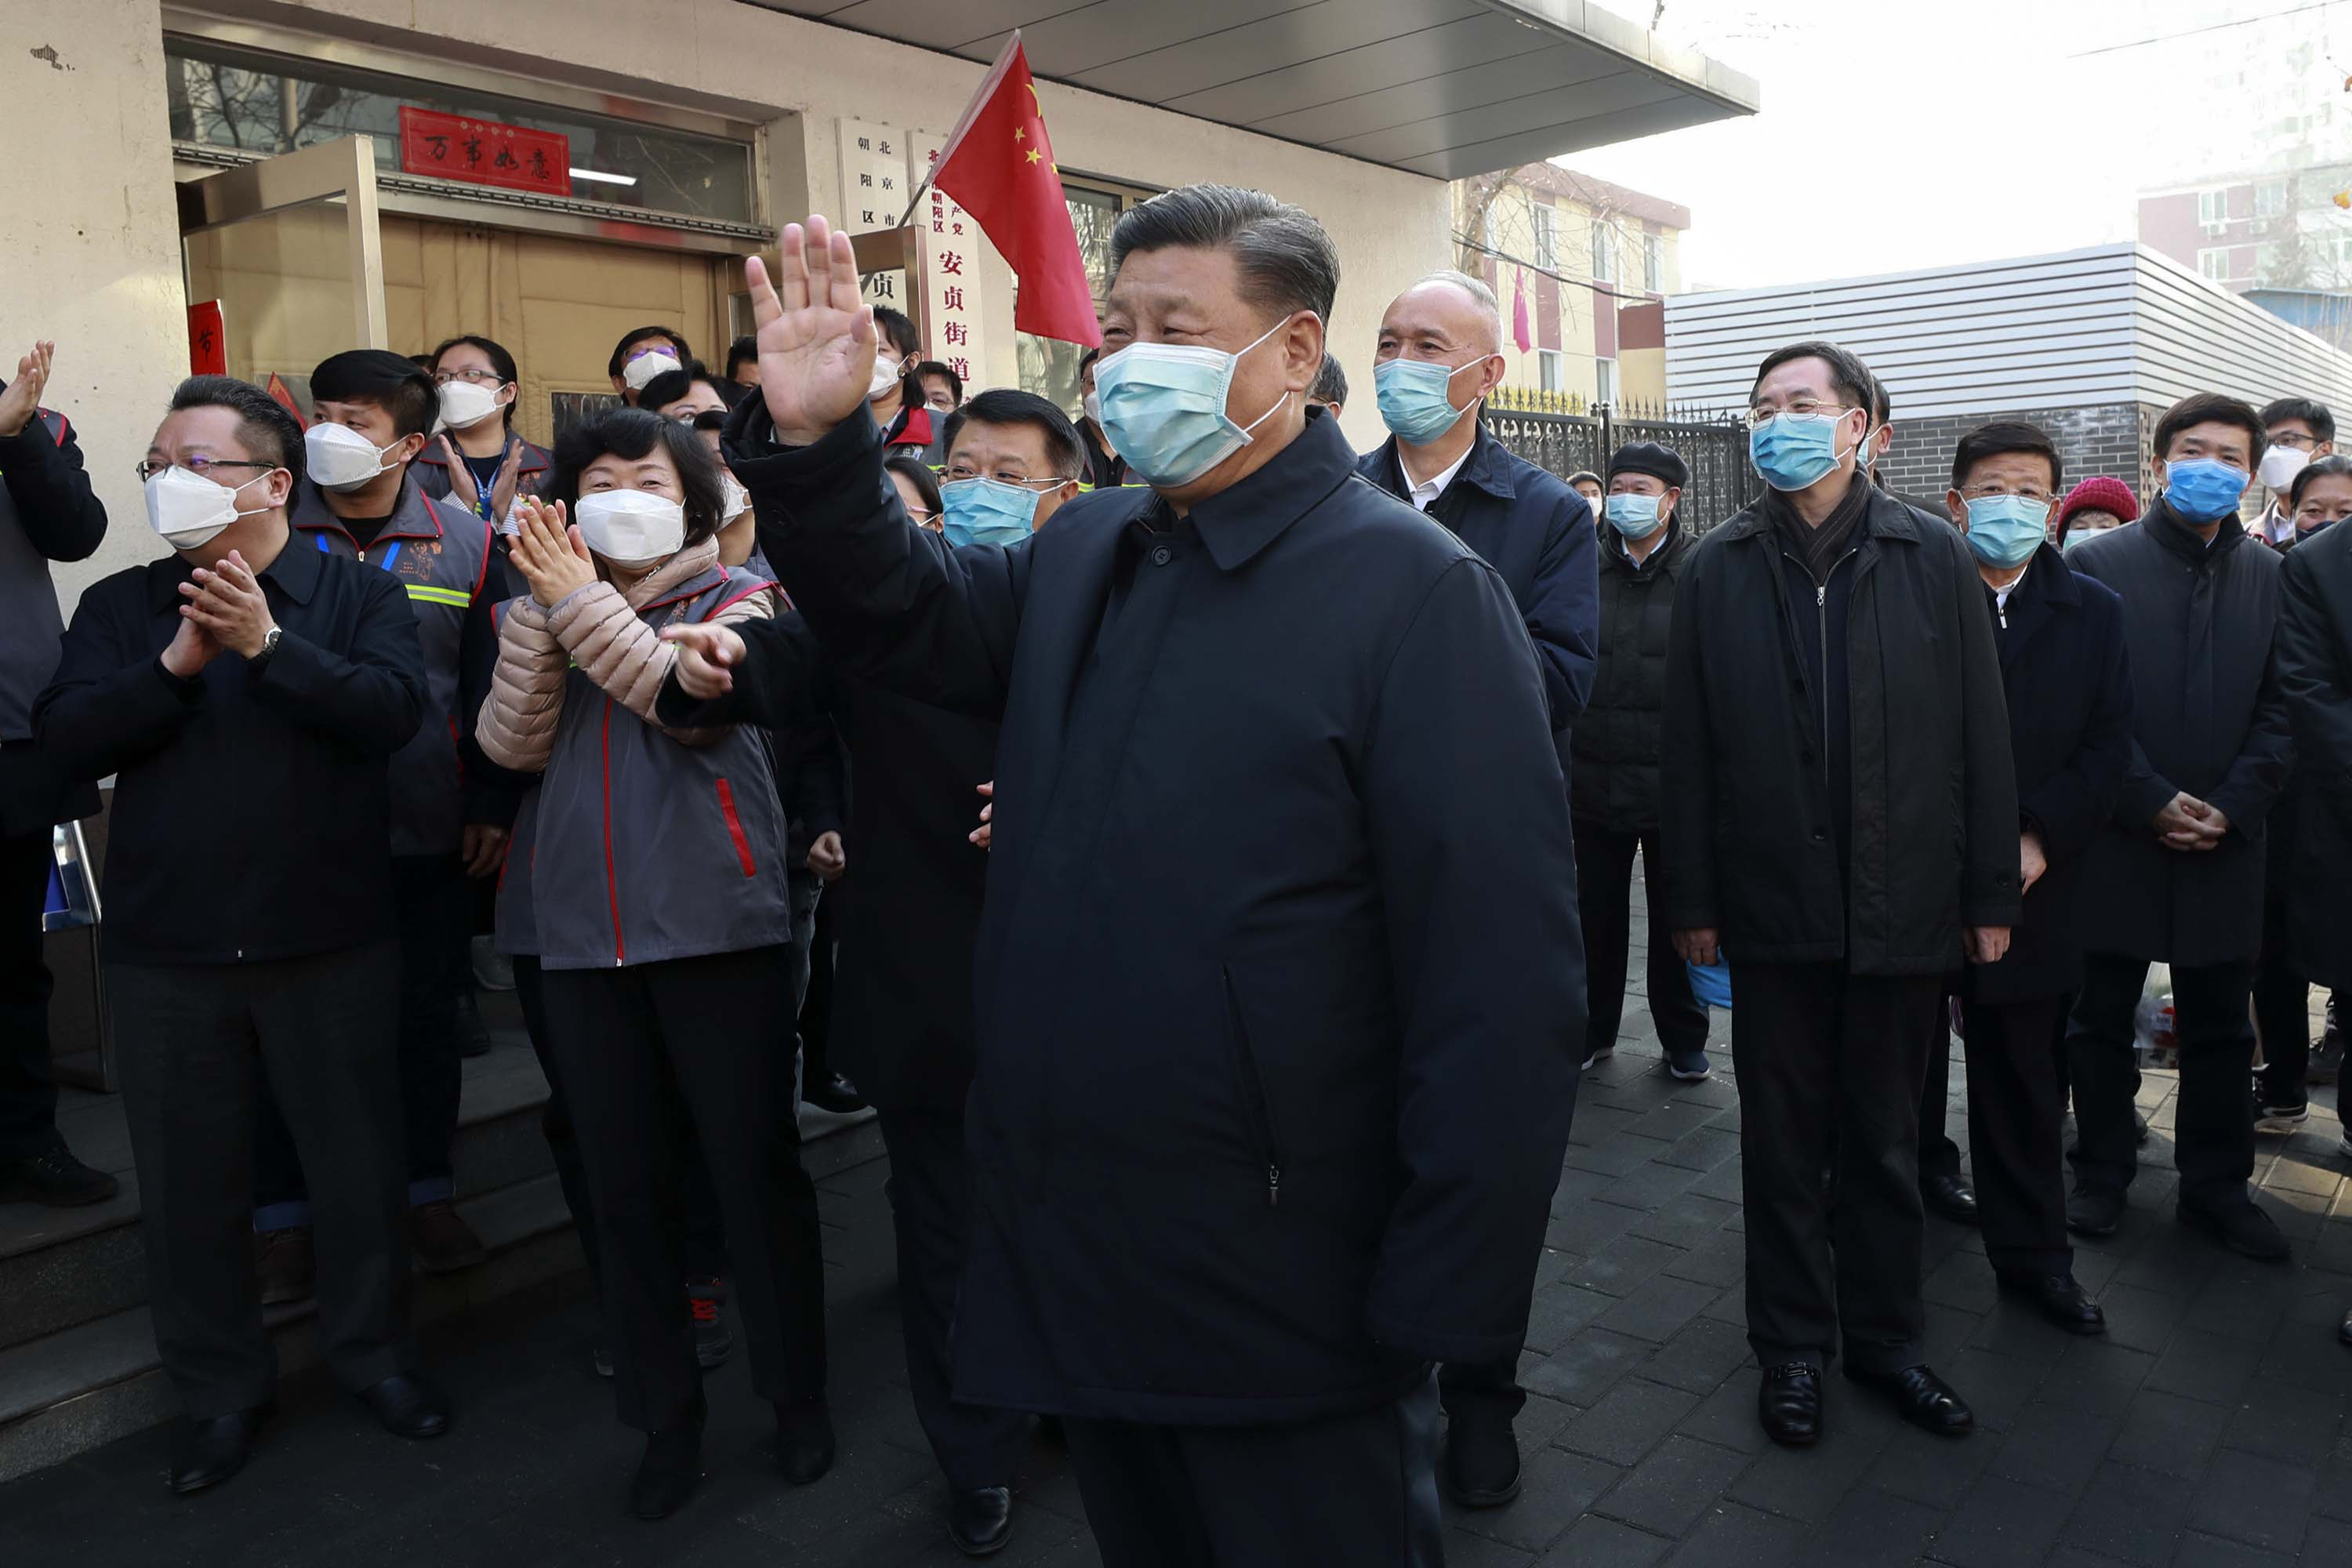 Chinese President Xi Jinping, center, wears a protective face mask during an appearance in Beijing on Monday.